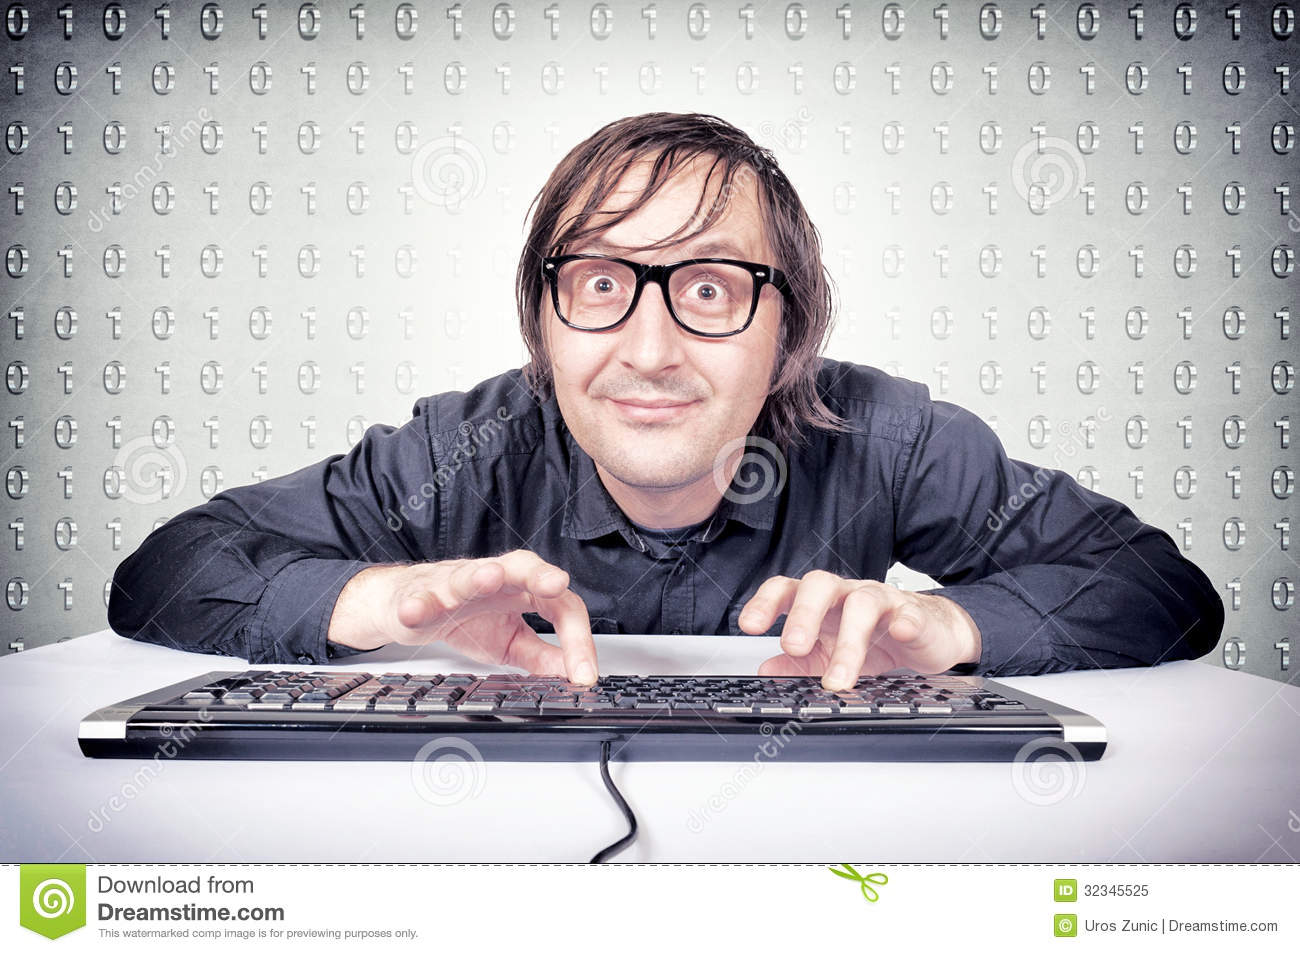 Royalty Free Stock Photo Funny Hacker Typing Keyboard Image32345525